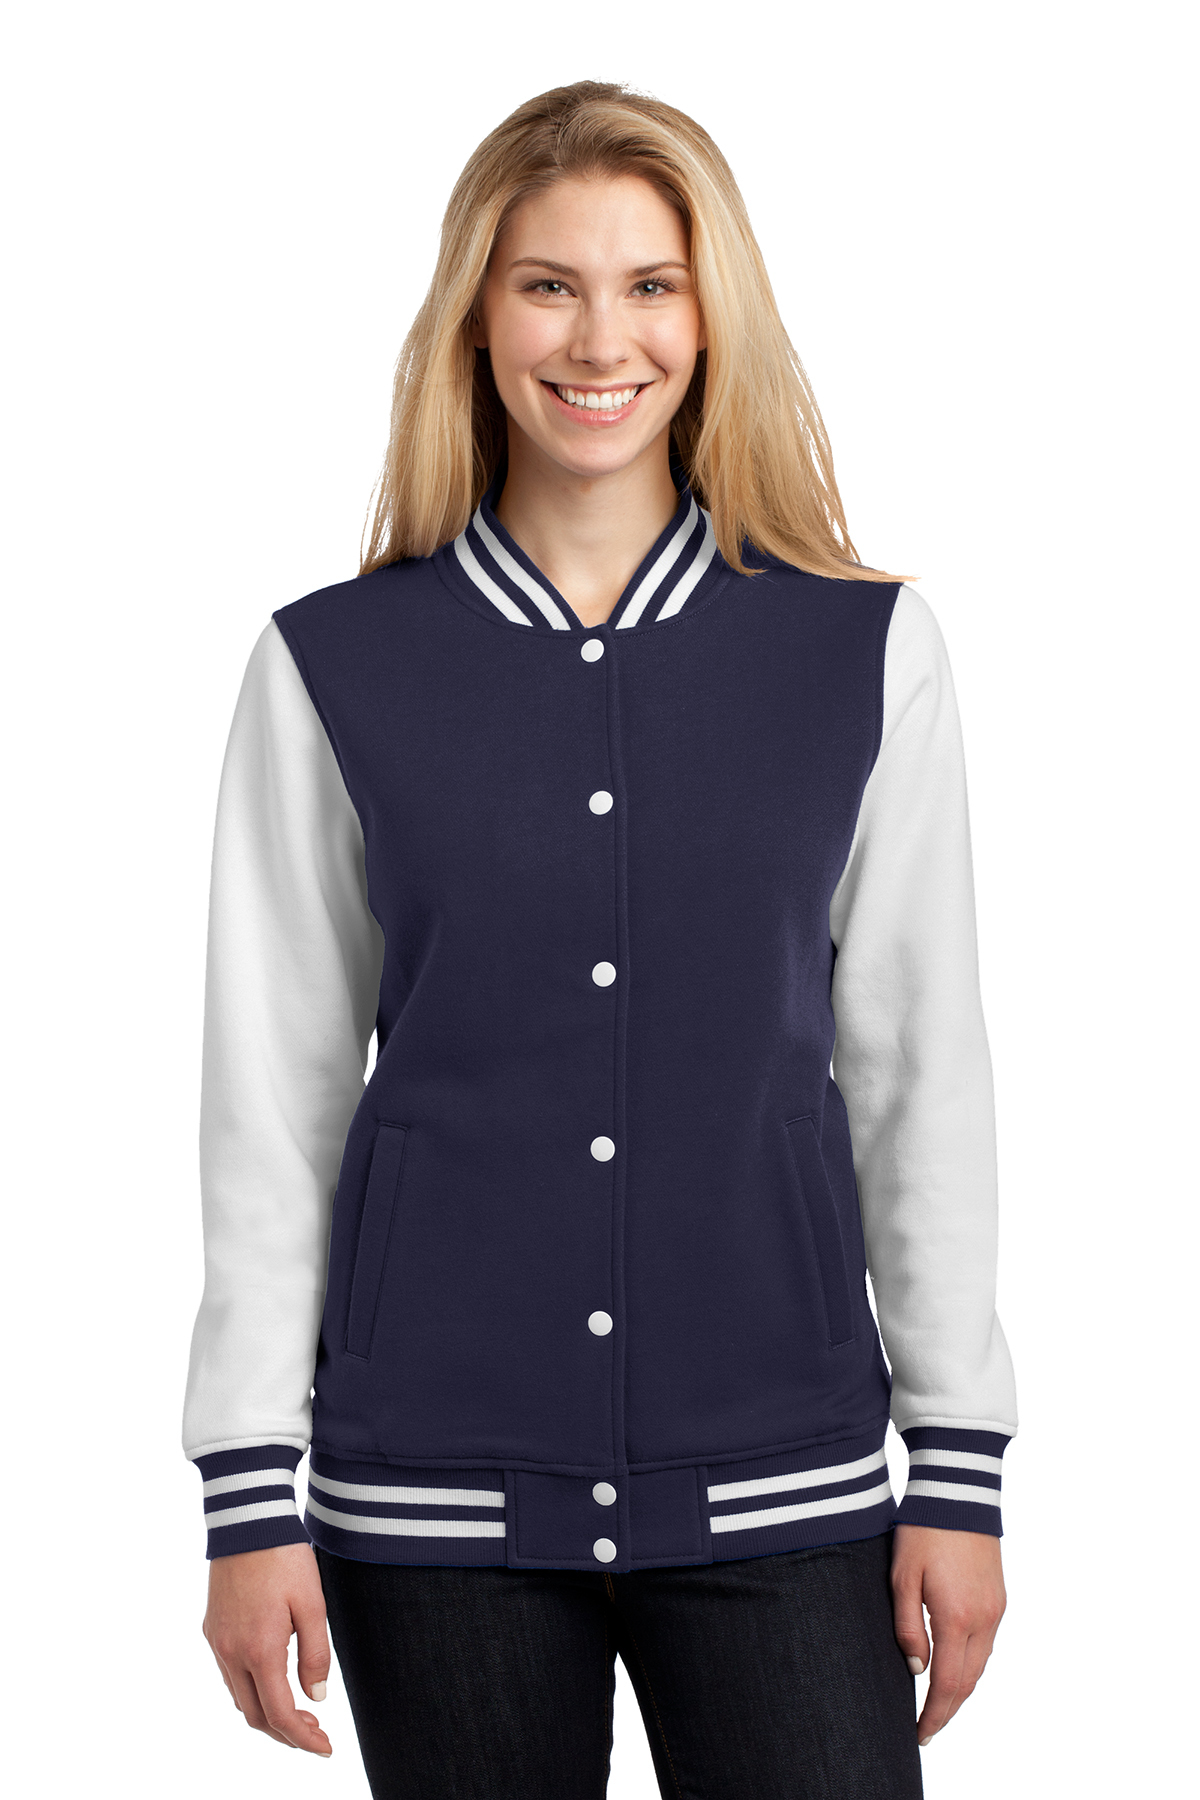 click to view True Navy/White